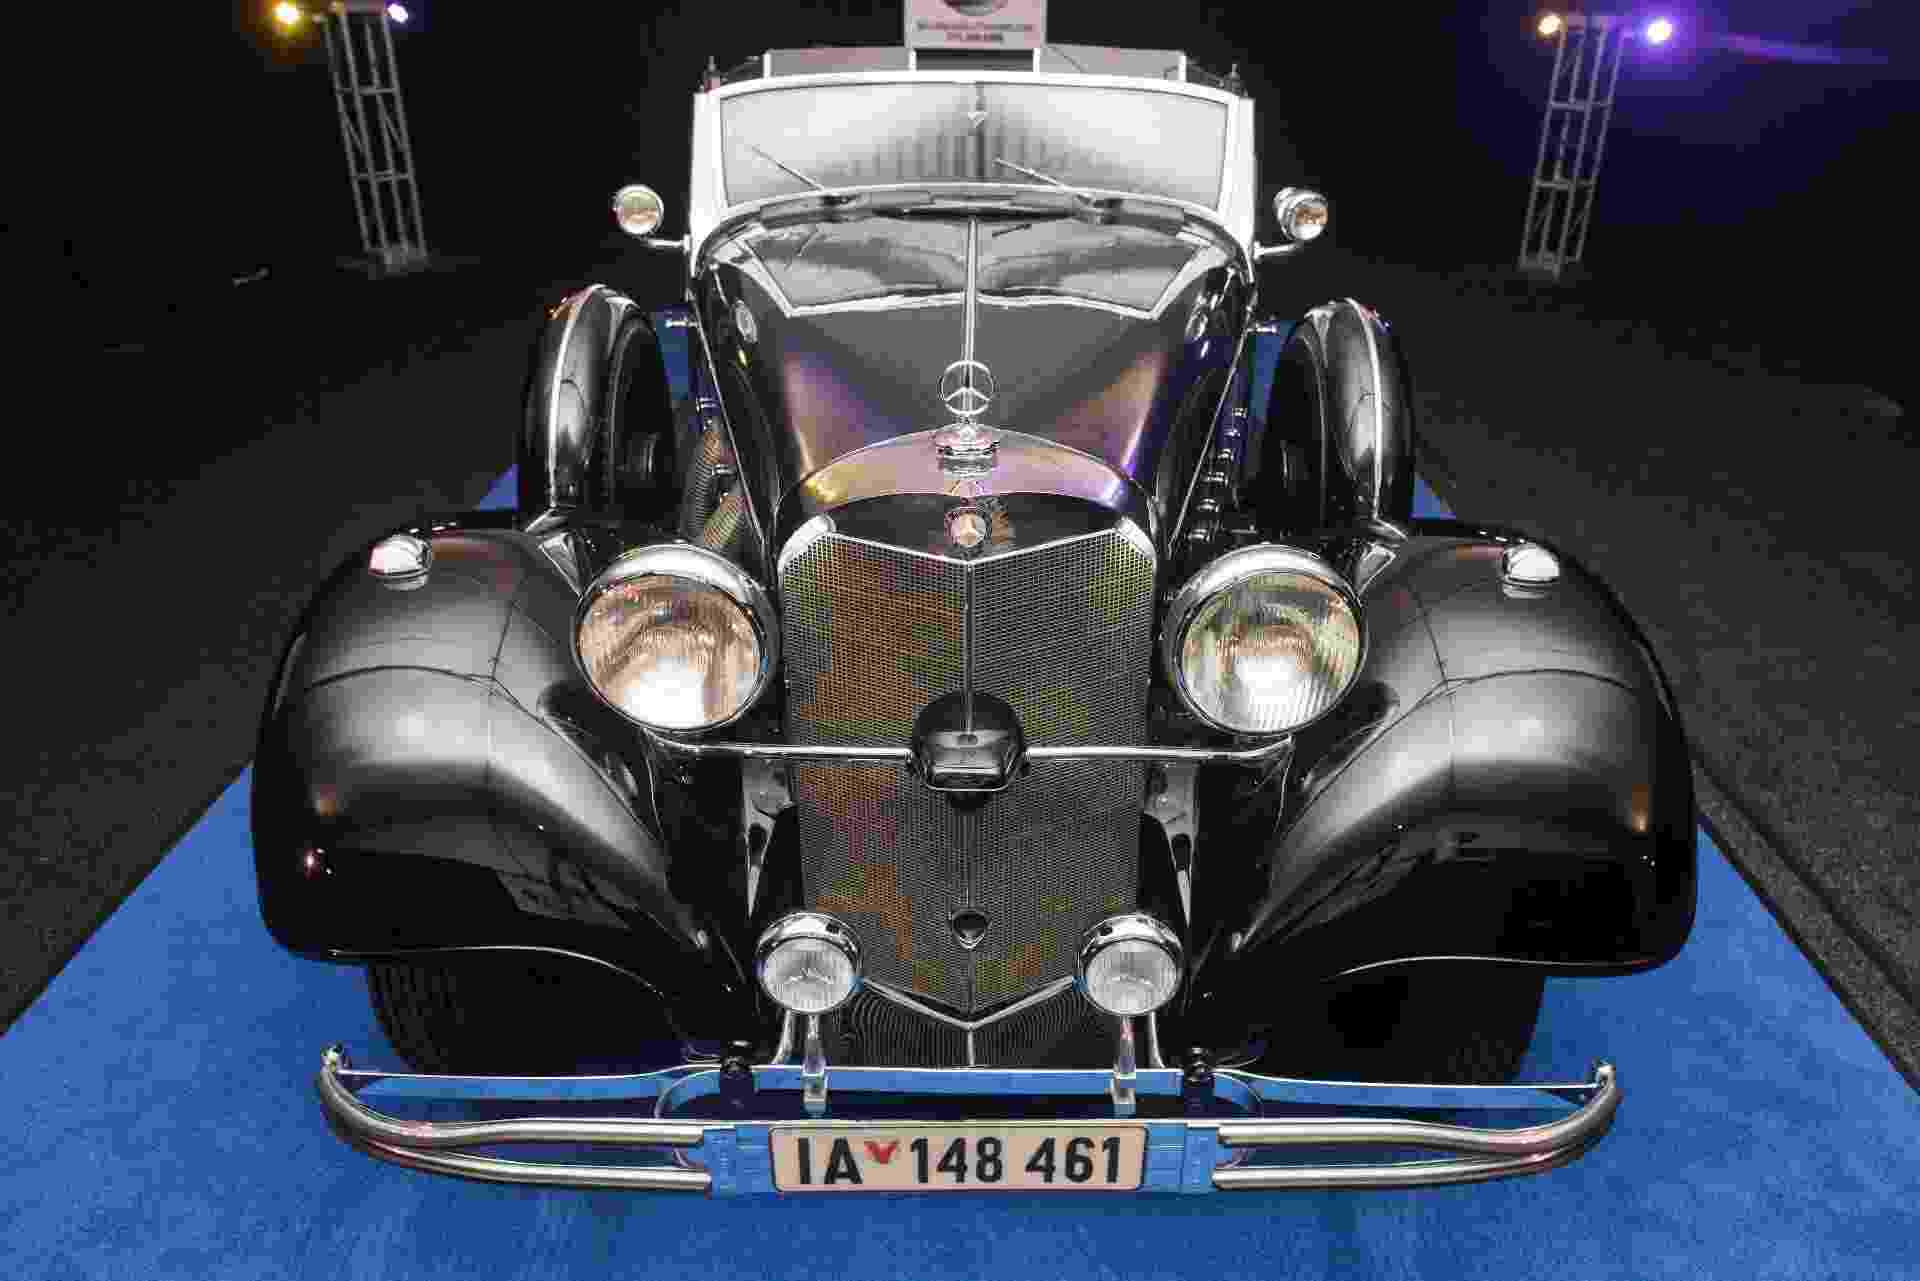 Mercedes-Benz 770K Grosser 1939 - Laura Segall/AFP